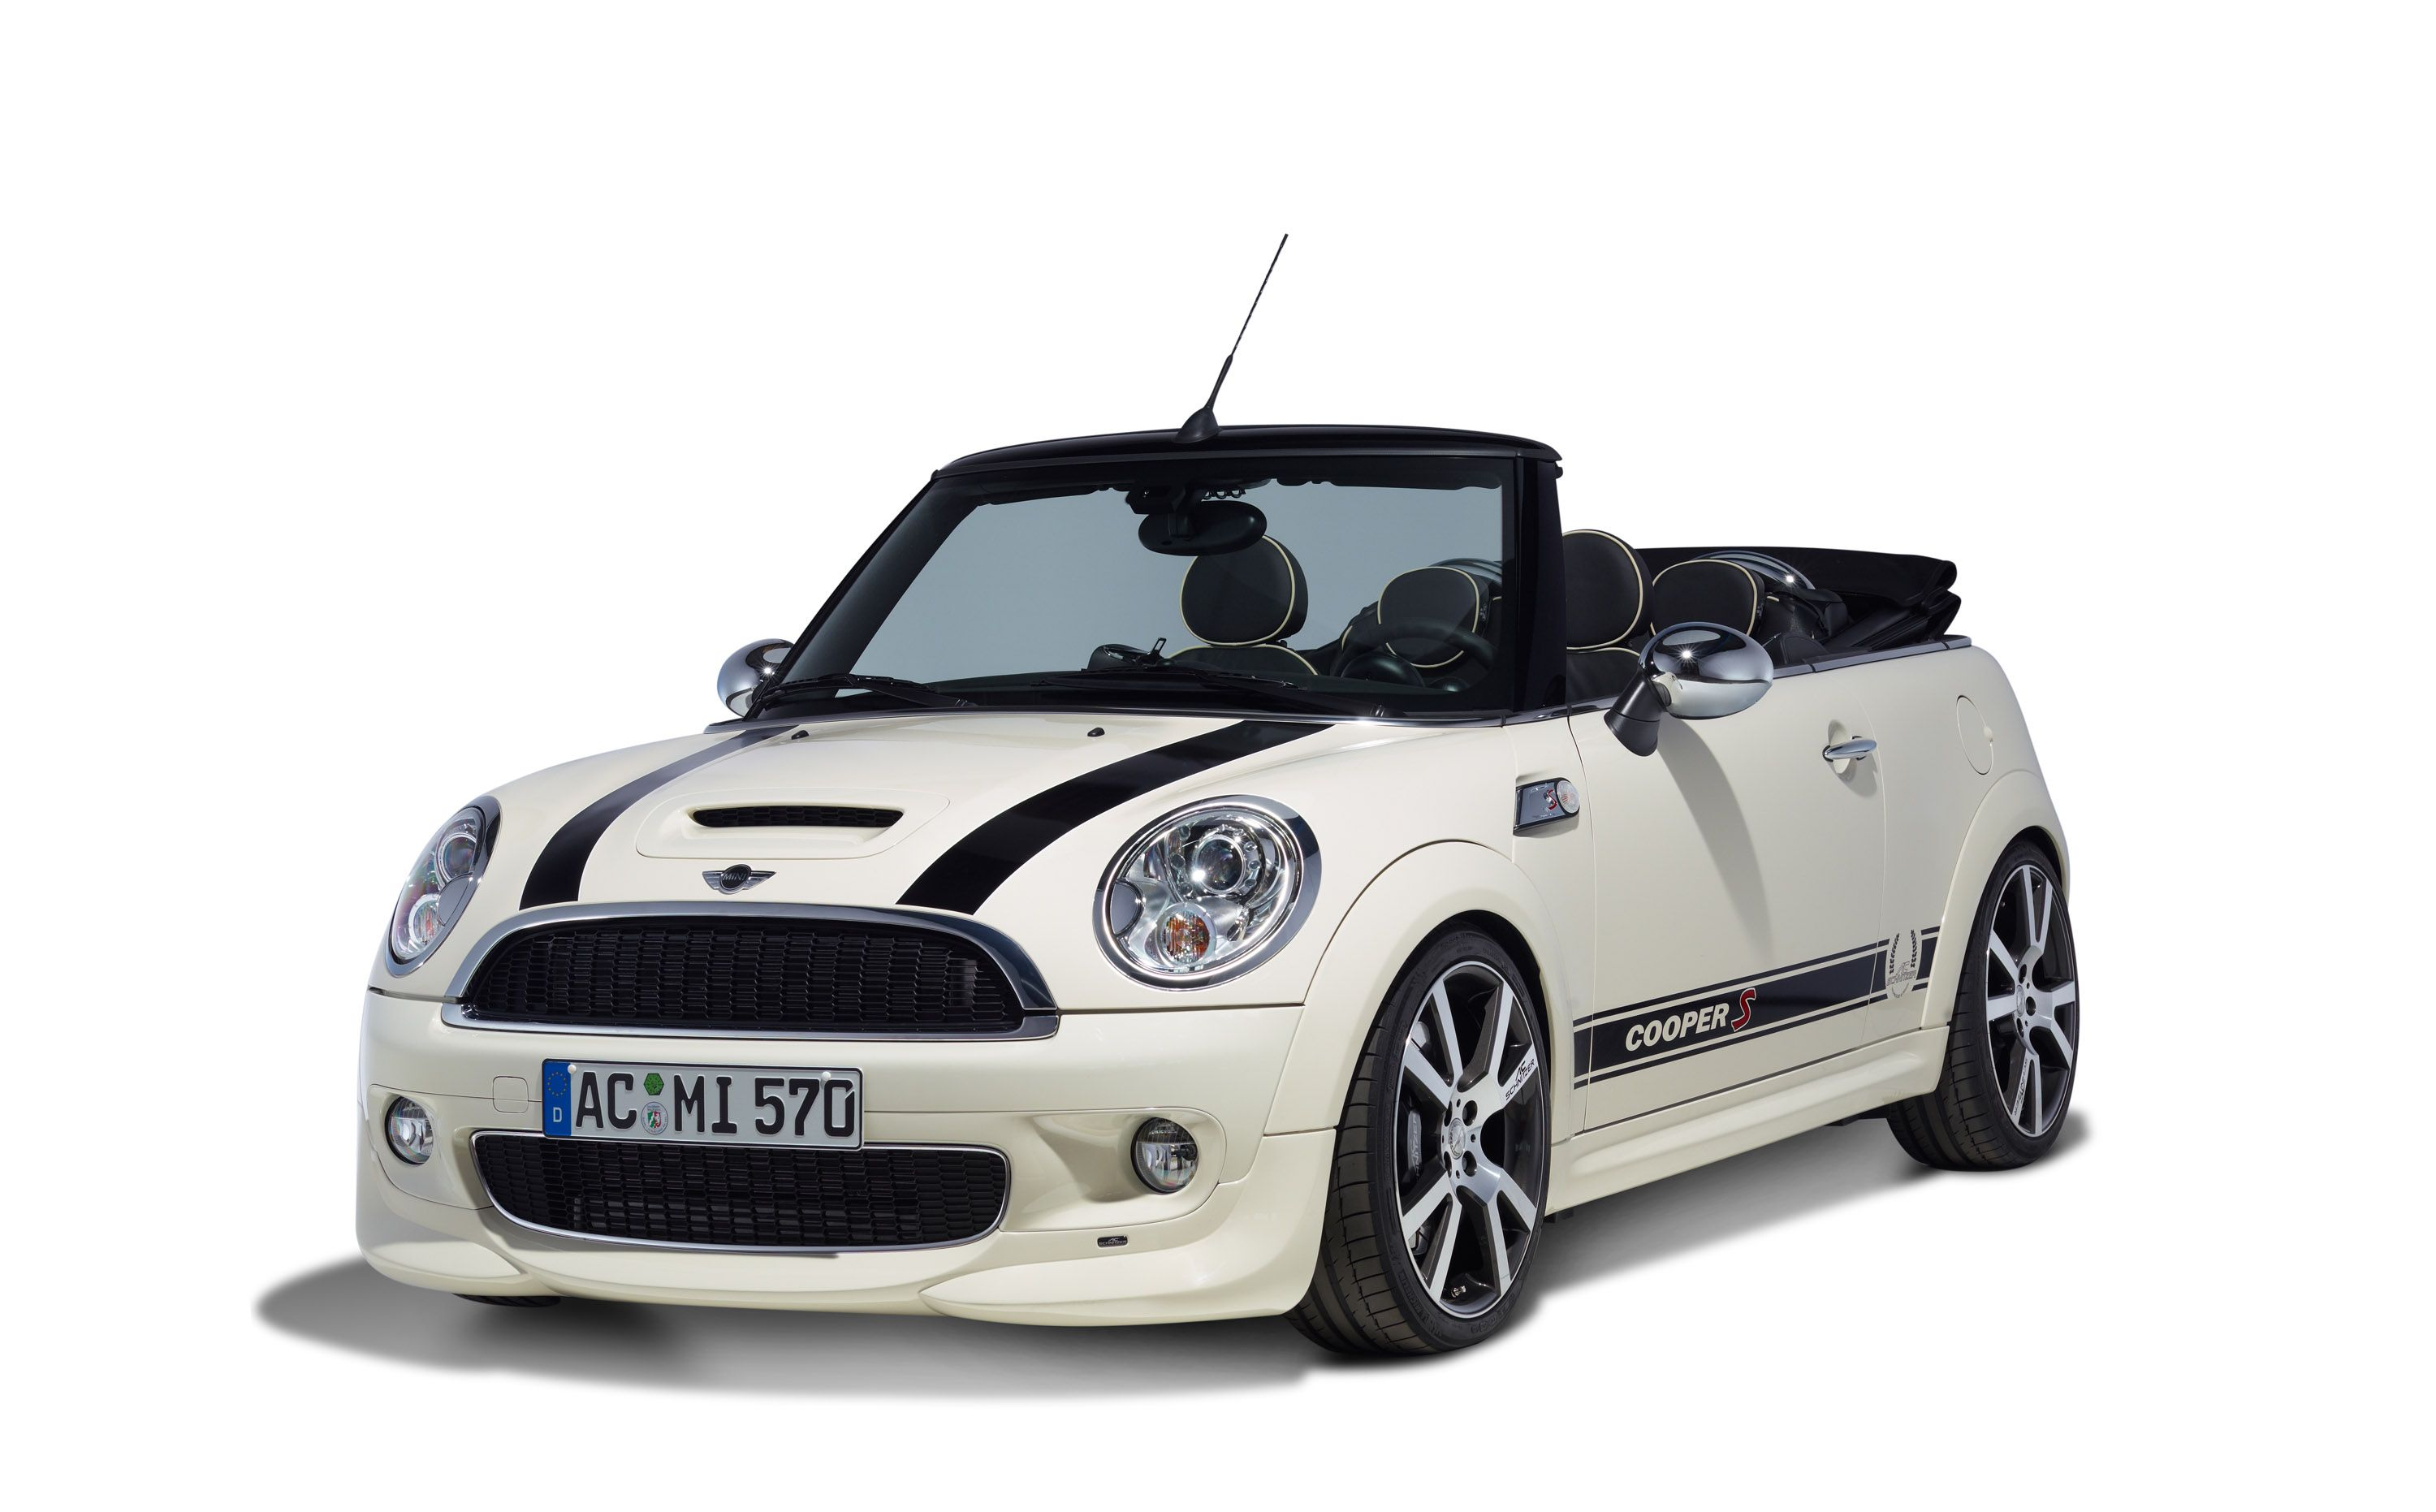 Pin By Erjona Bega On Cars I Love Mini Cooper Convertible Mini